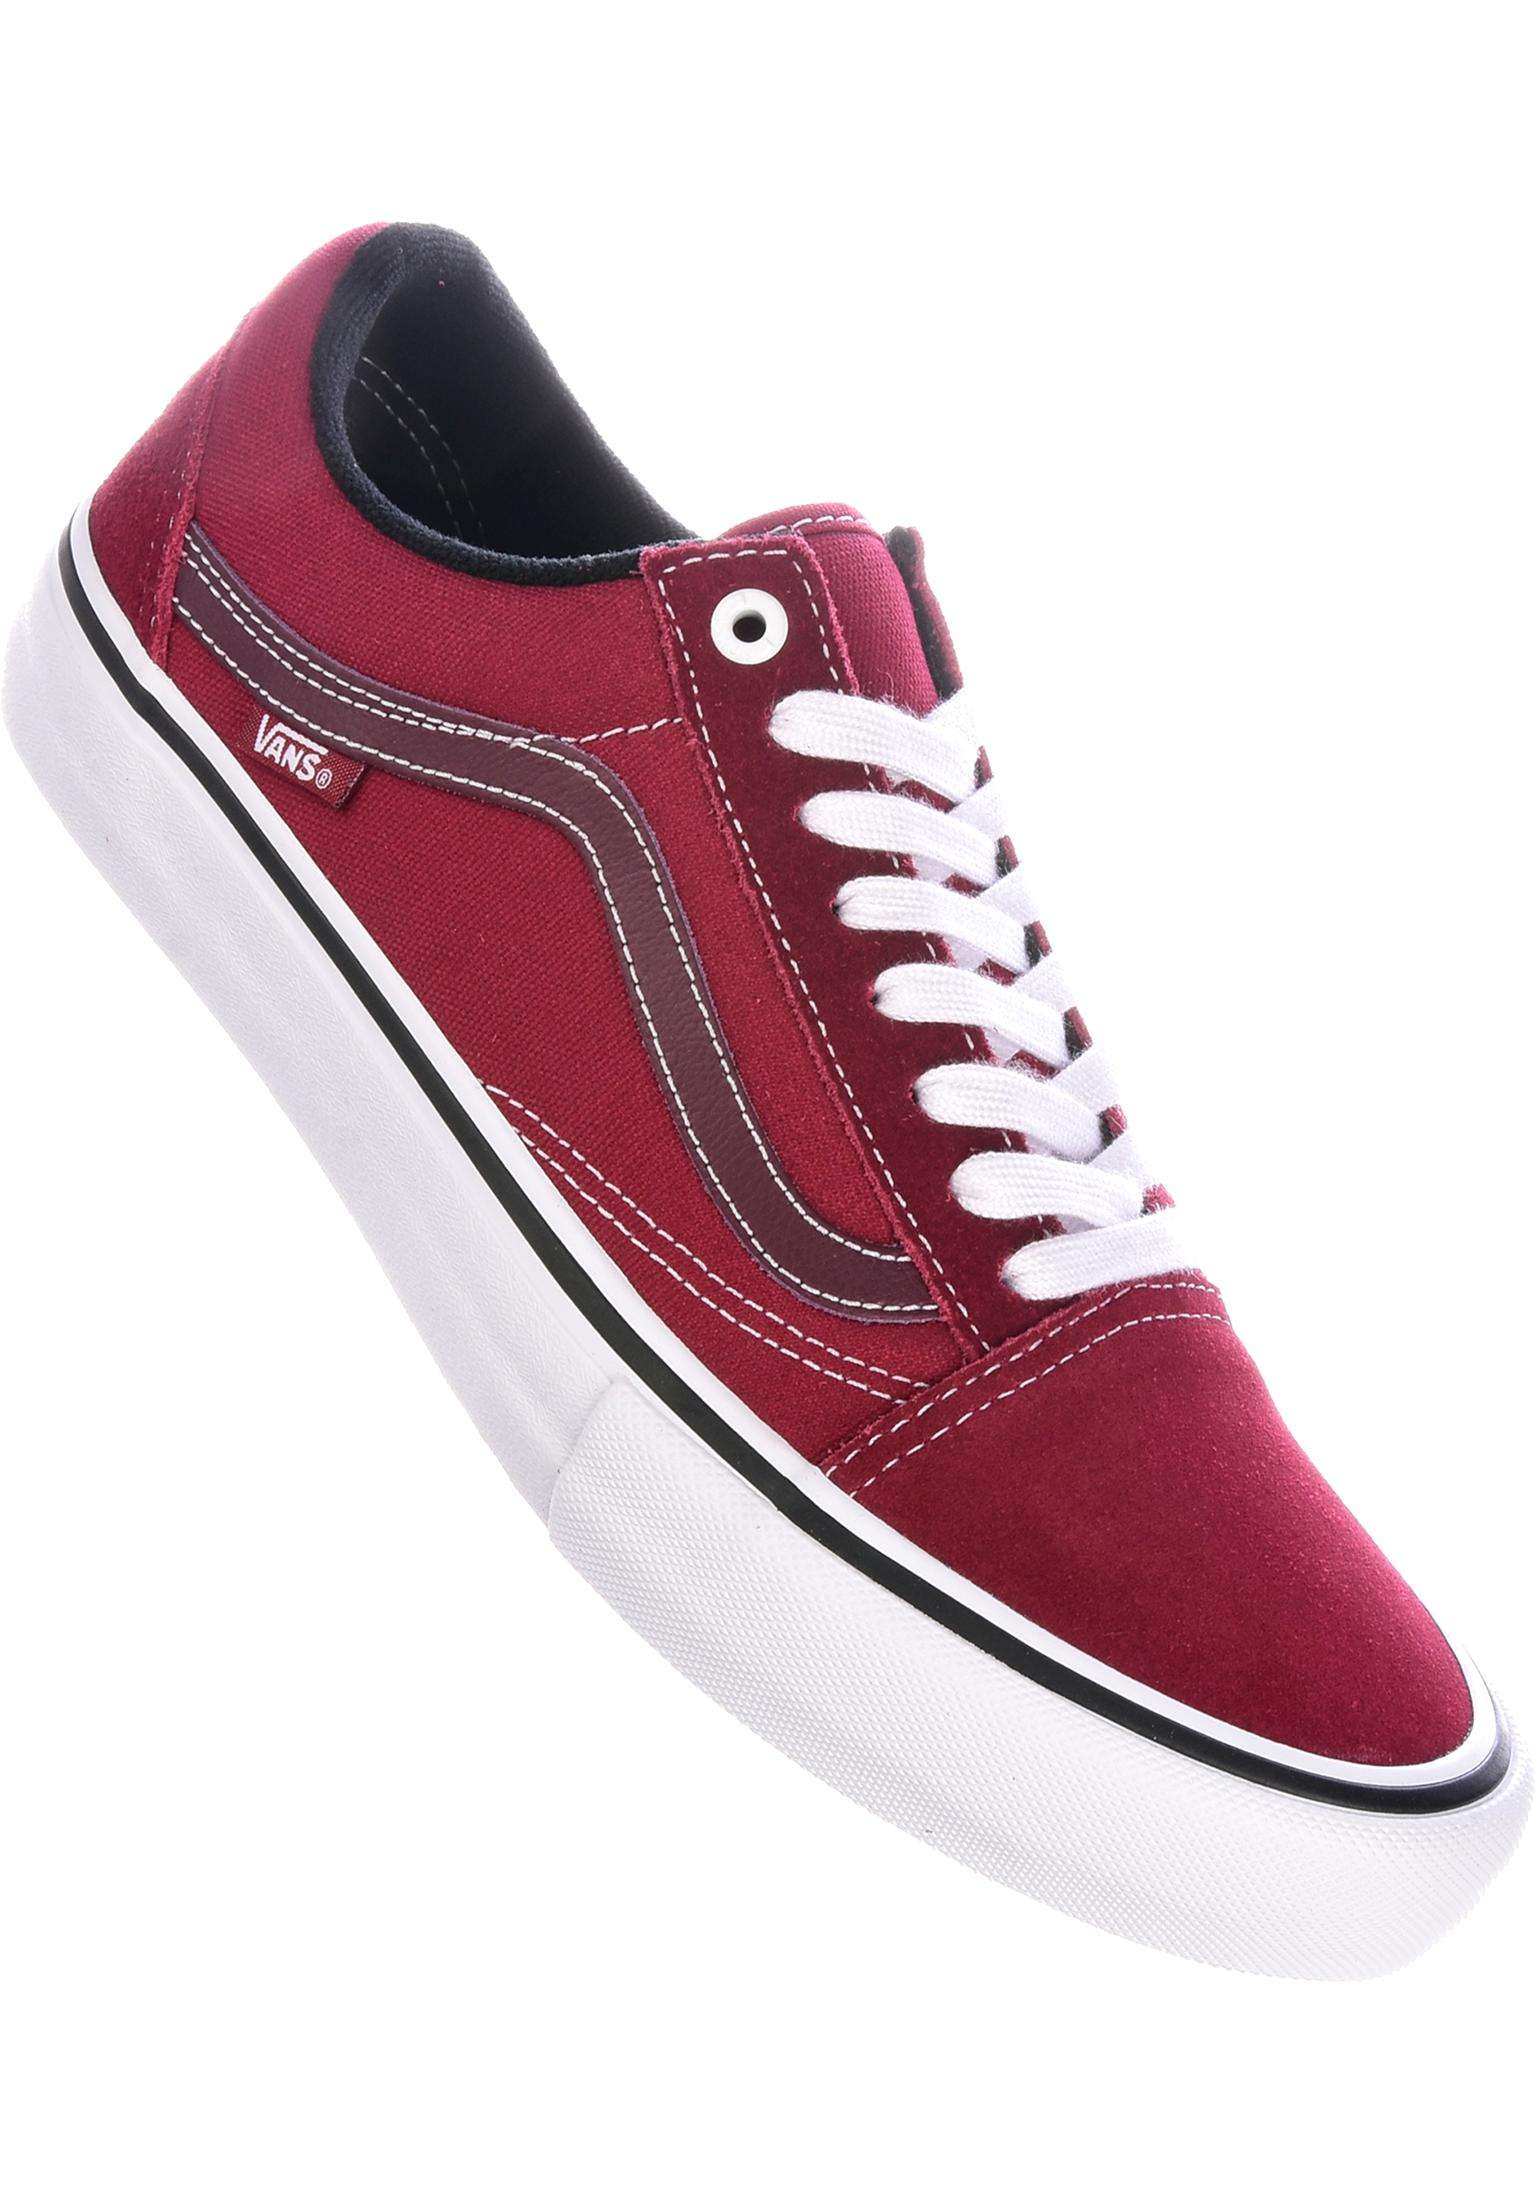 3cfd9f00b6 Old Skool Pro Vans All Shoes in rumbared-truewhite for Men